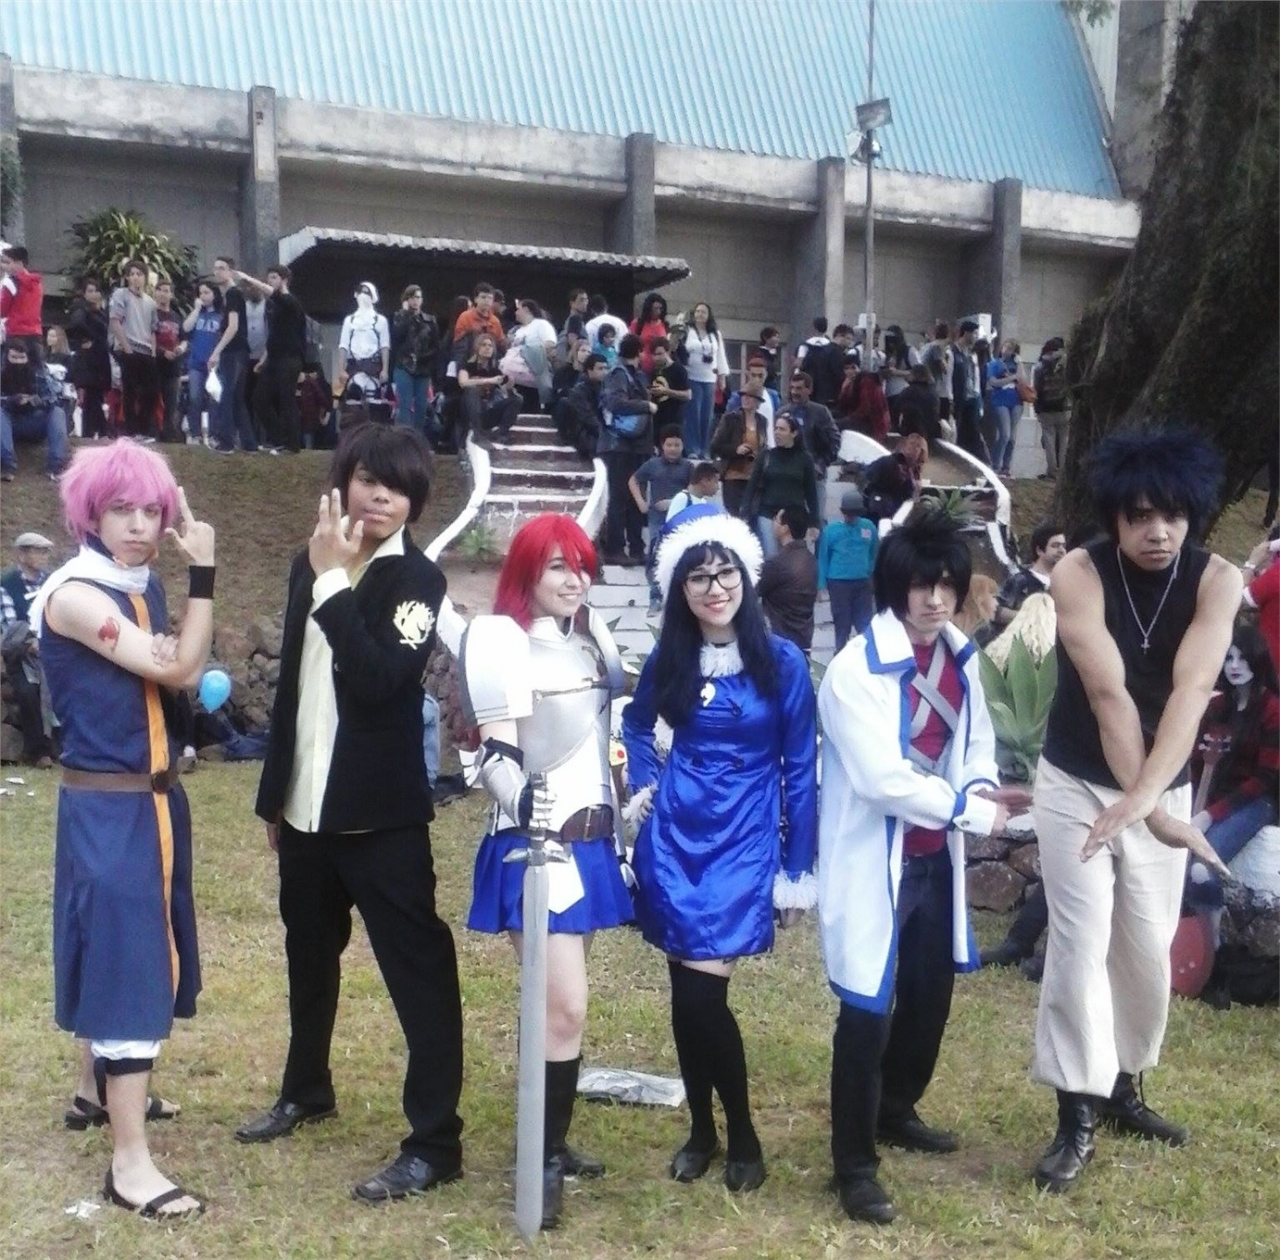 Enjoy the Very Amazing Fairy Tail Cosplay Photos